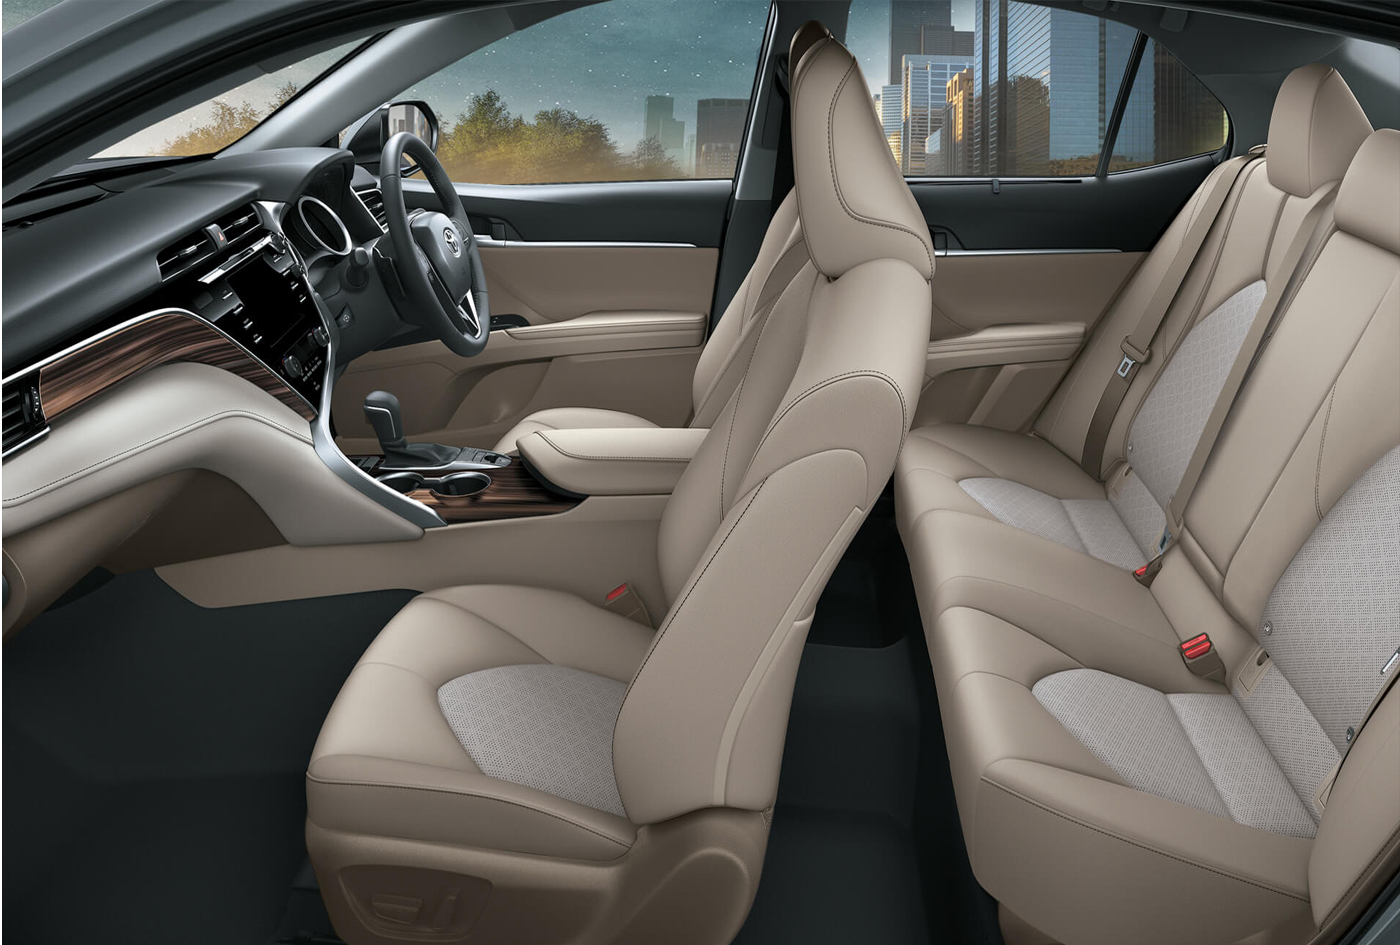 Toyota Camry: Types of collisions that may not deploy the SRS airbags (SRS side and curtain shield airbags)